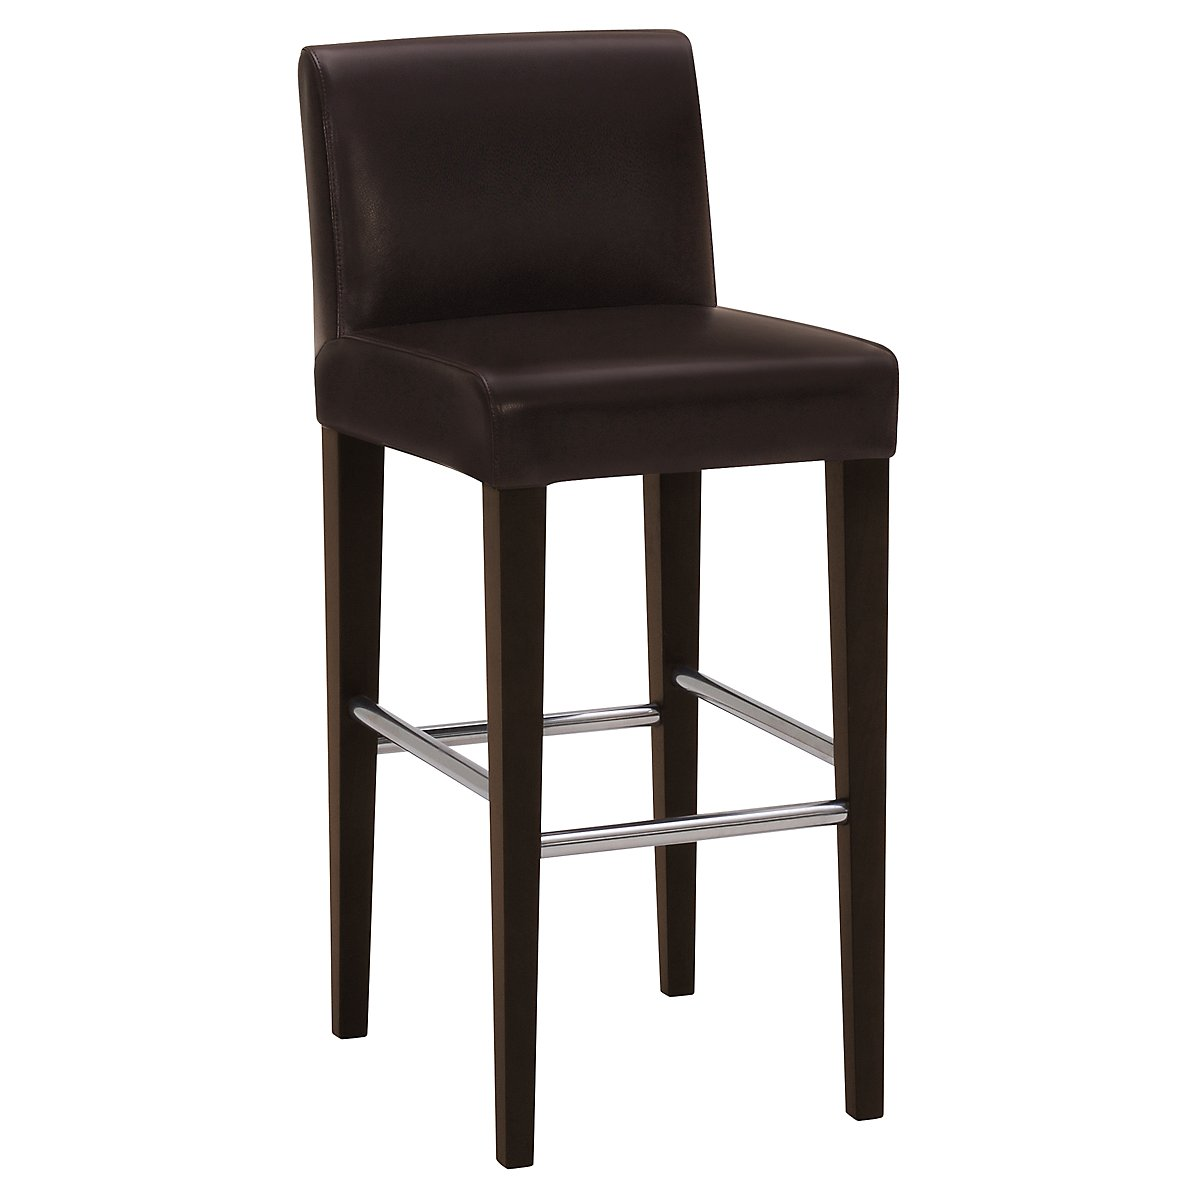 "Kyle Dark Brown Bonded Leather 30"" Upholstered Barstool"